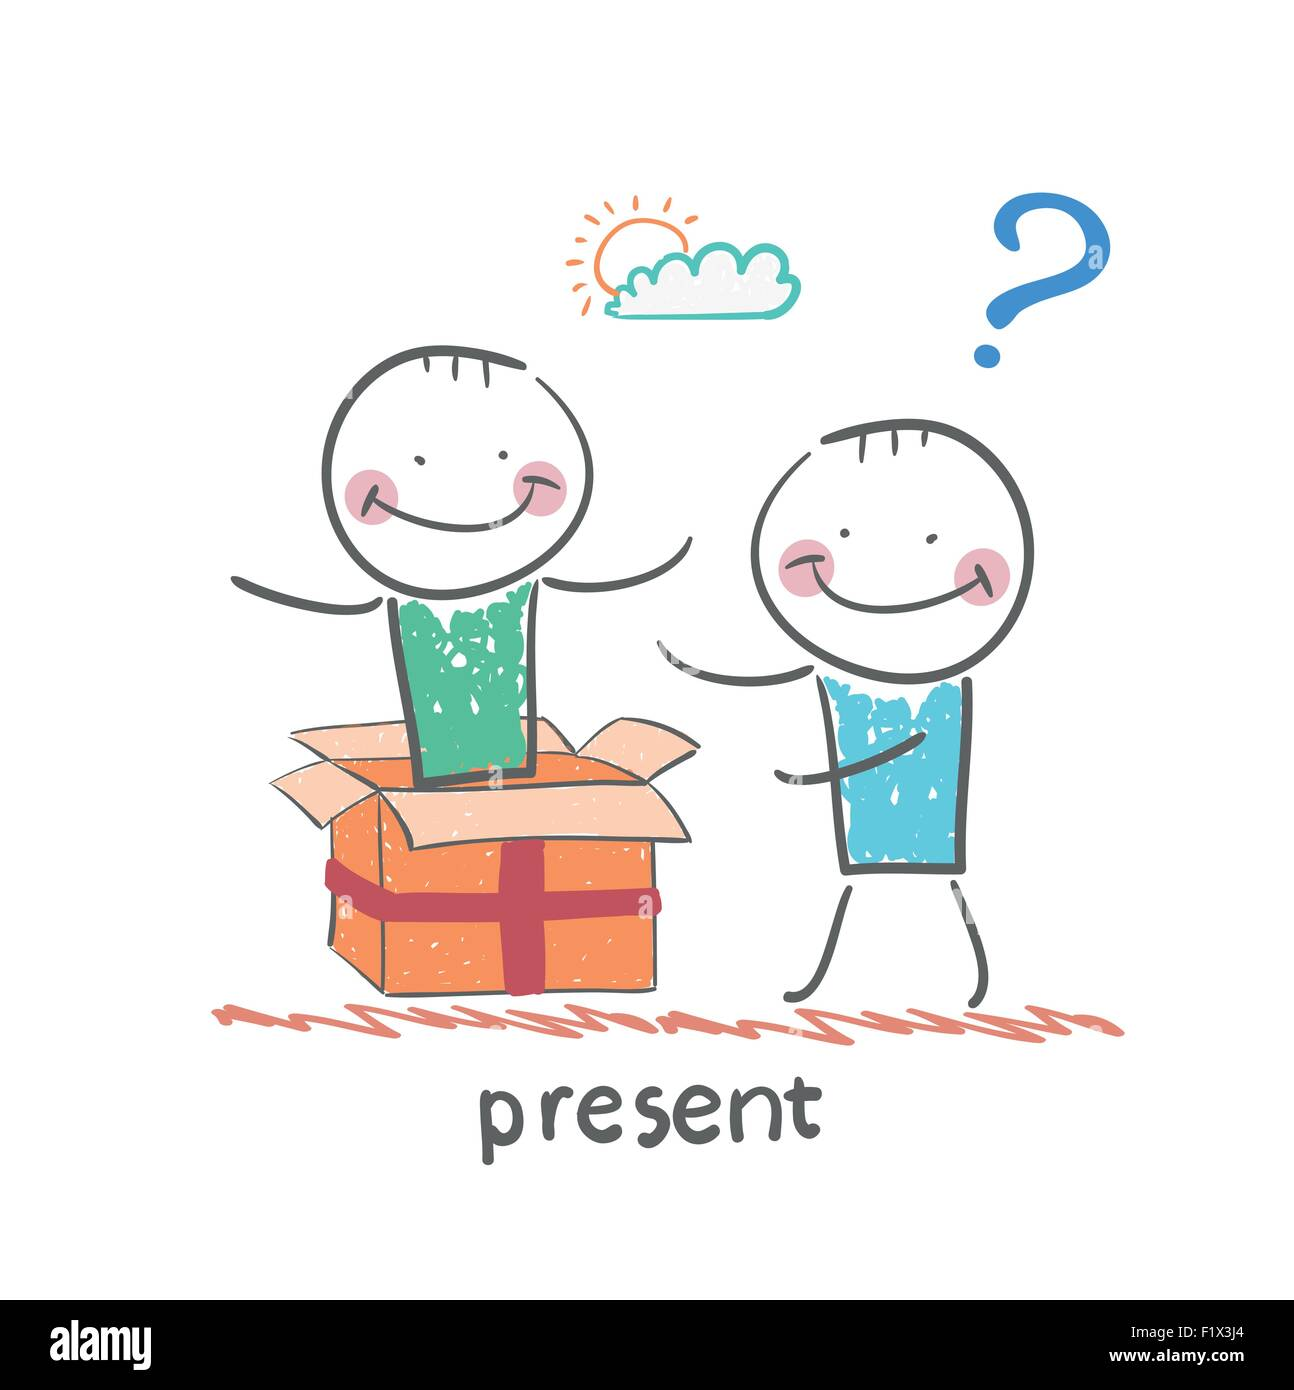 man received a gift from another person - Stock Image